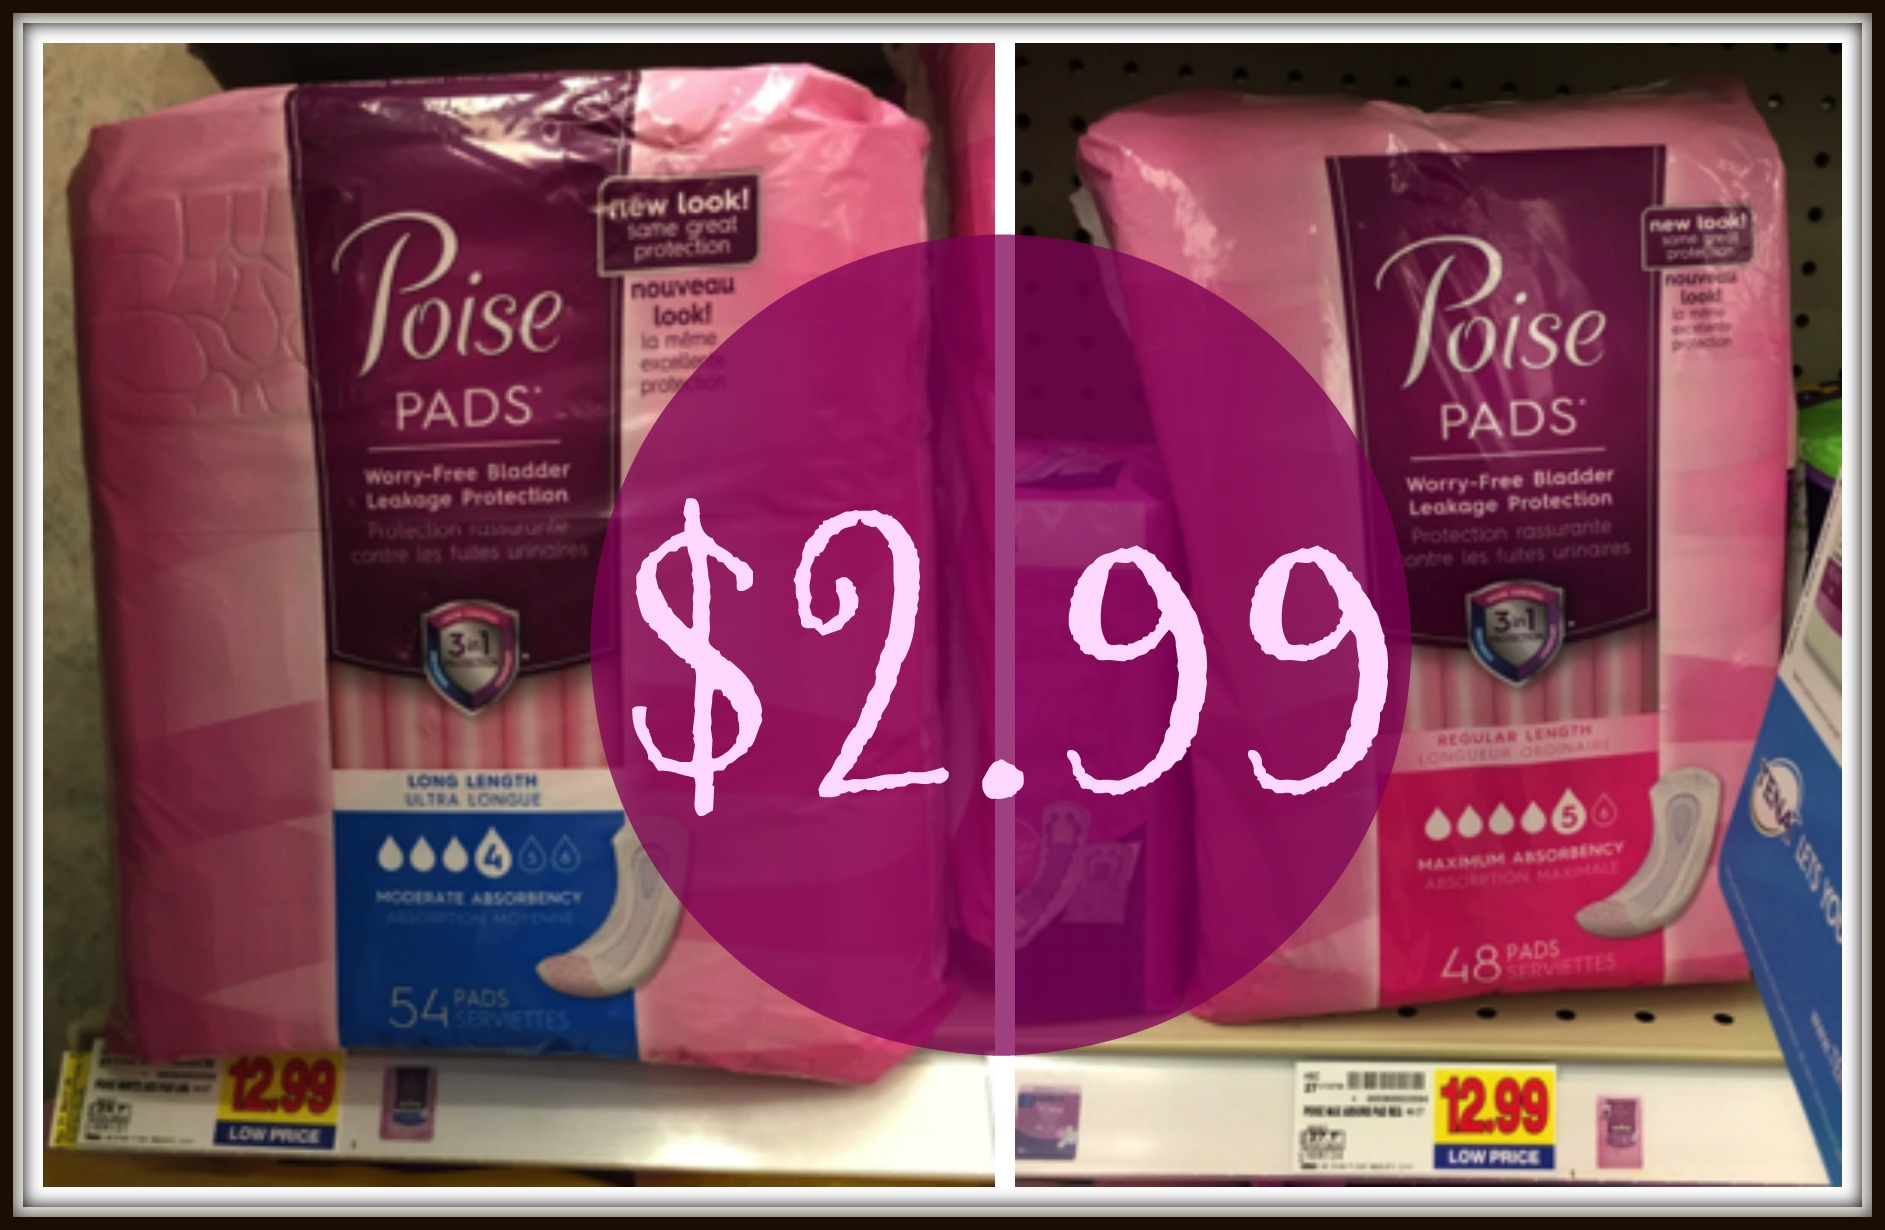 poise pads Image